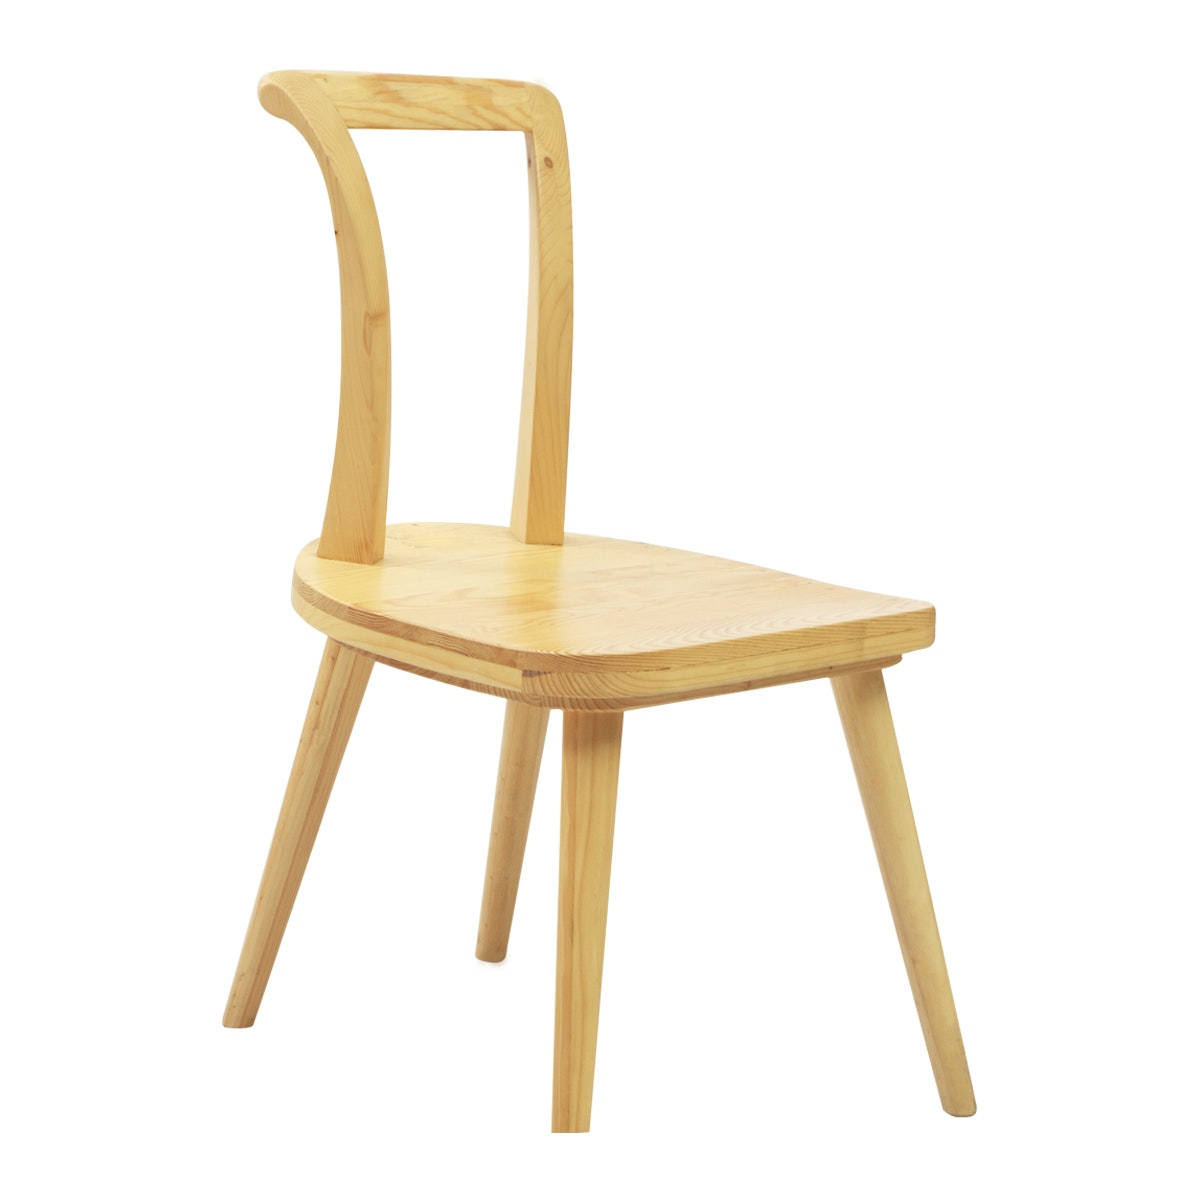 Kreakita Cuckoo Chair